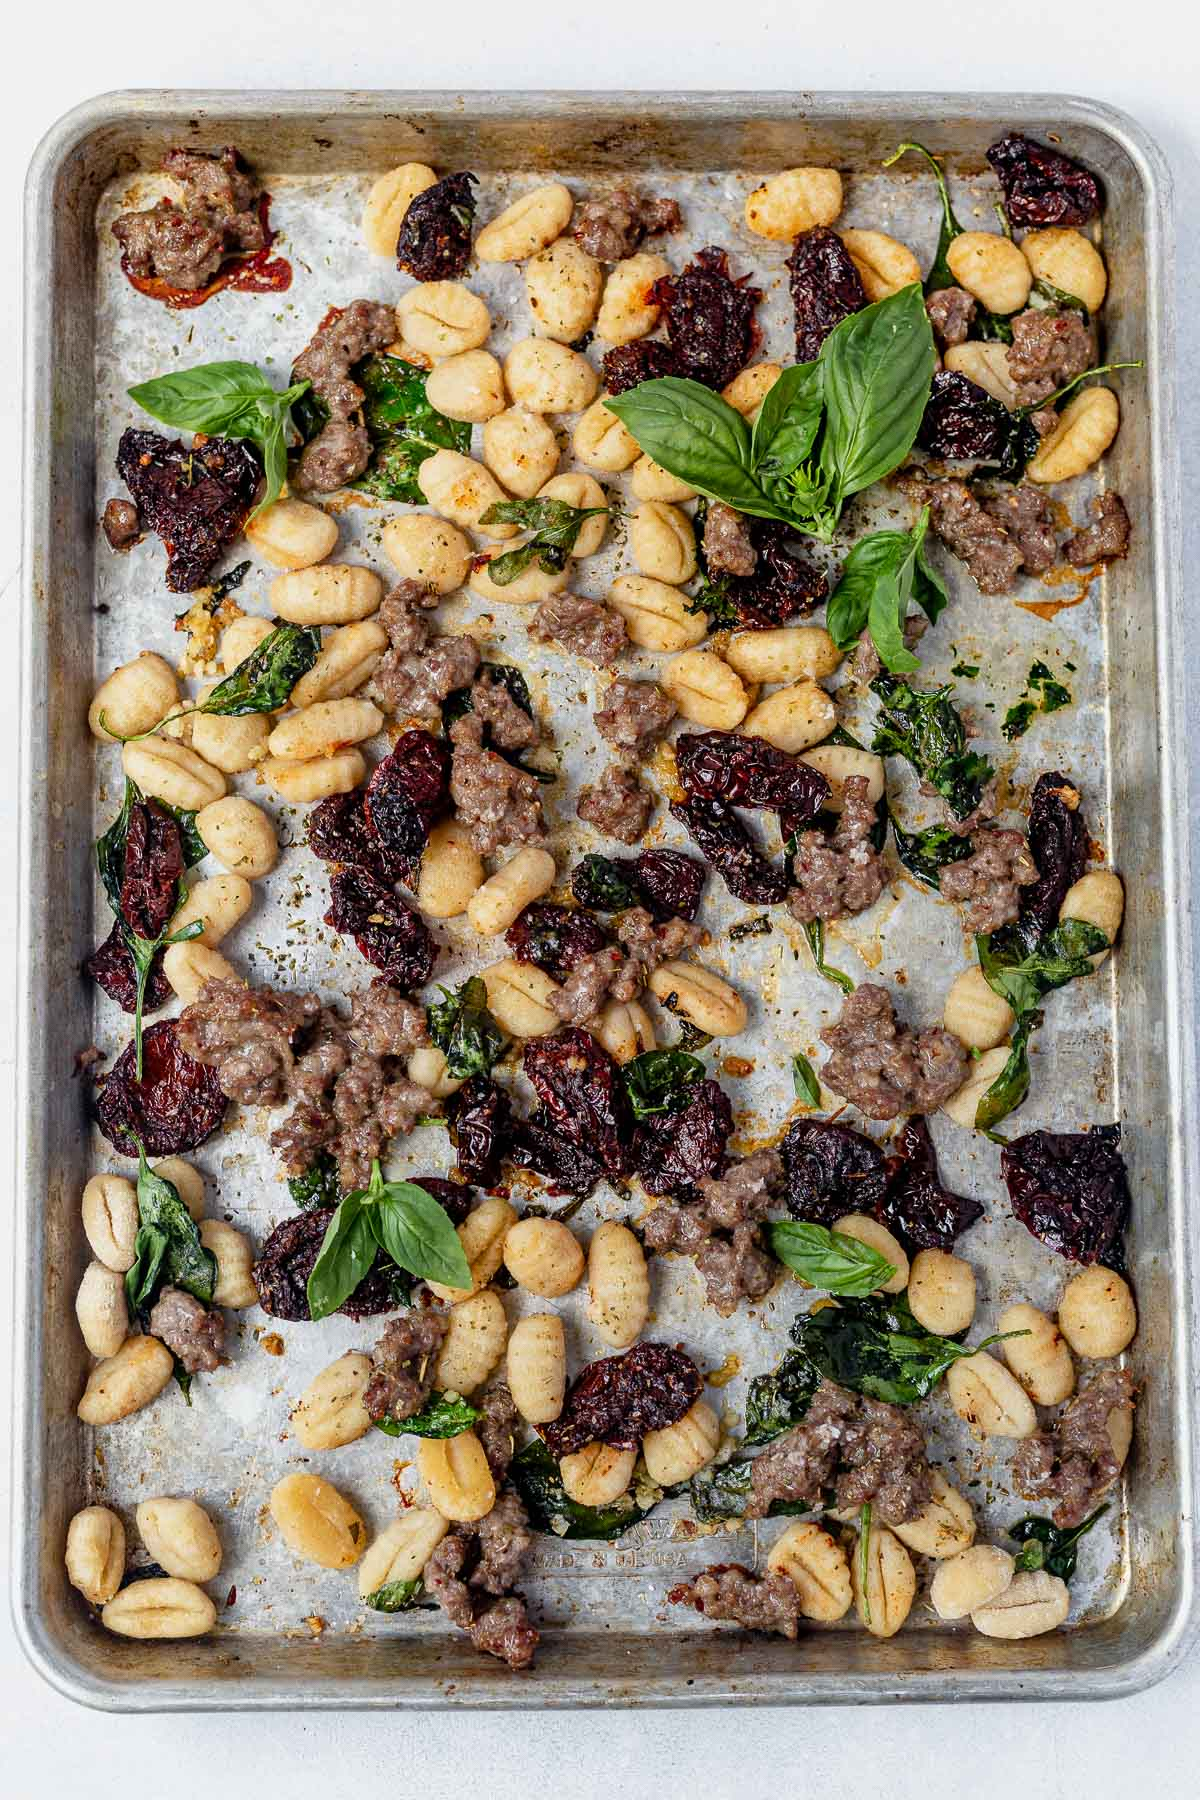 gnocchi, sausage and sun dried tomatoes all cooked on one sheet pan